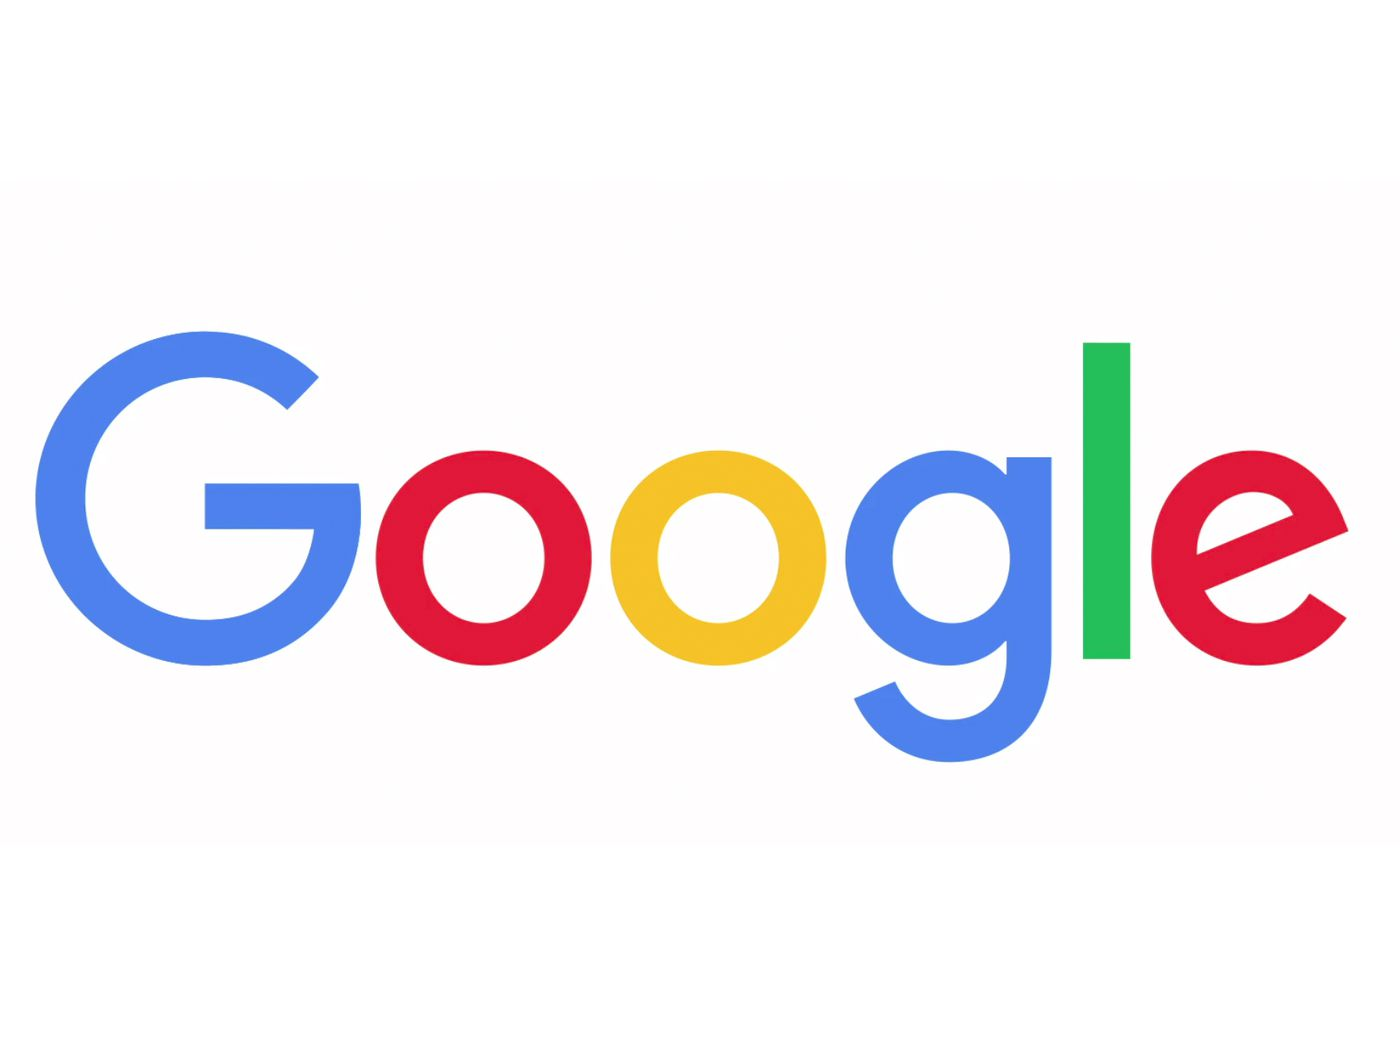 Google has a new logo - The Verge